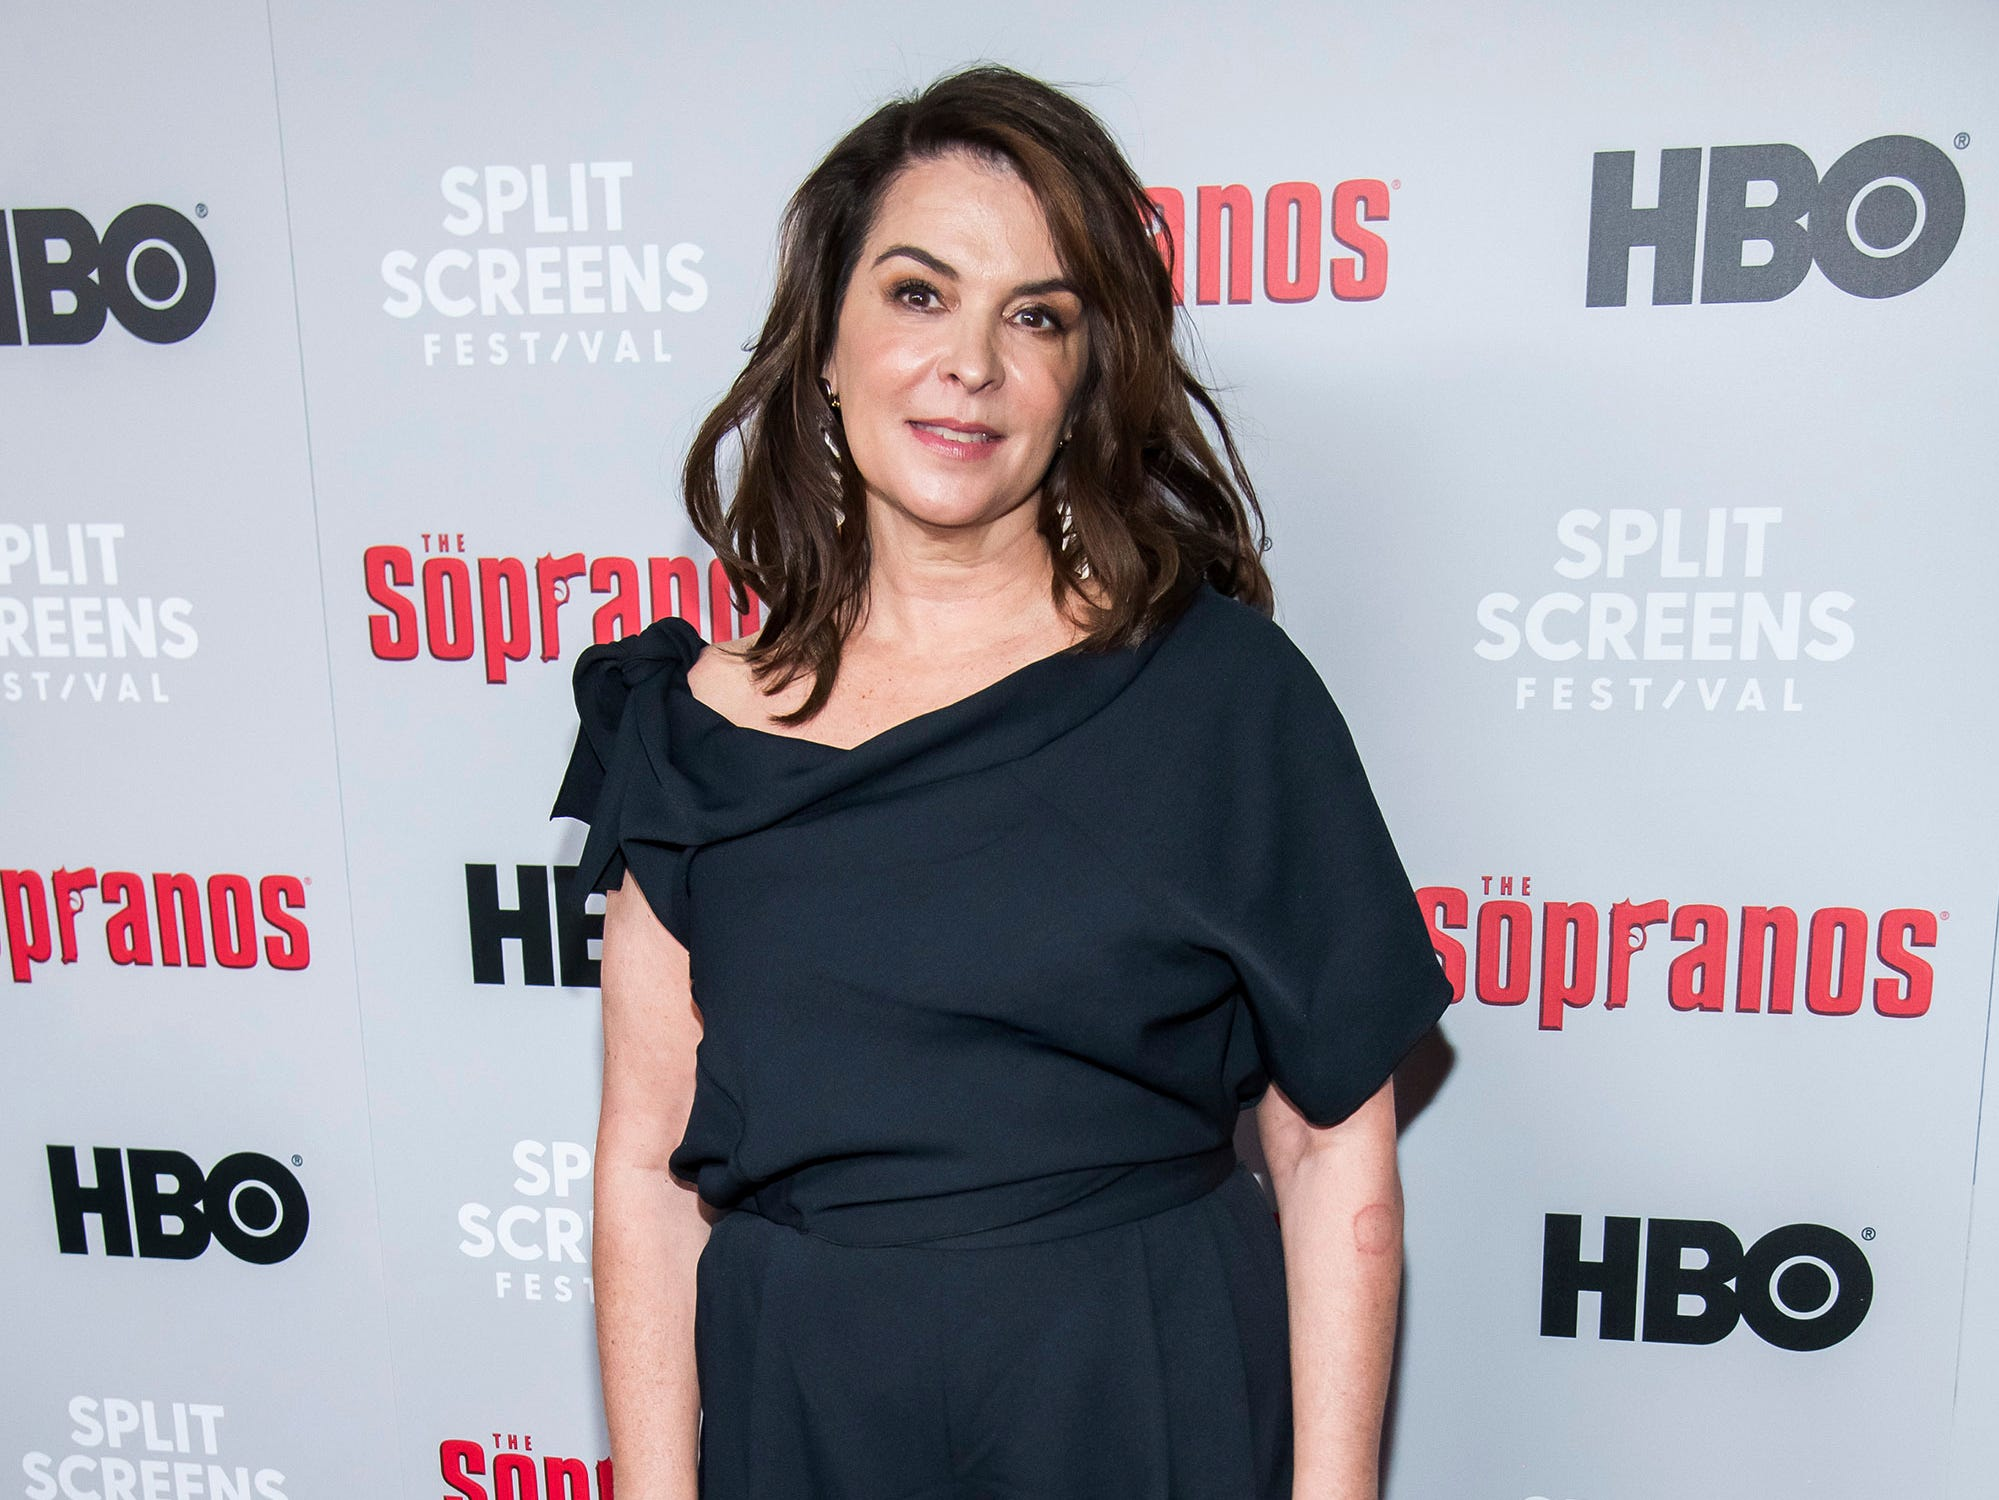 "Annabella Sciorra, who played Gloria Trillo on the show, attends HBO's ""The Sopranos"" 20th anniversary at the SVA Theatre on Wednesday, Jan. 9, 2019, in New York. (Photo by Charles Sykes/Invision/AP)"